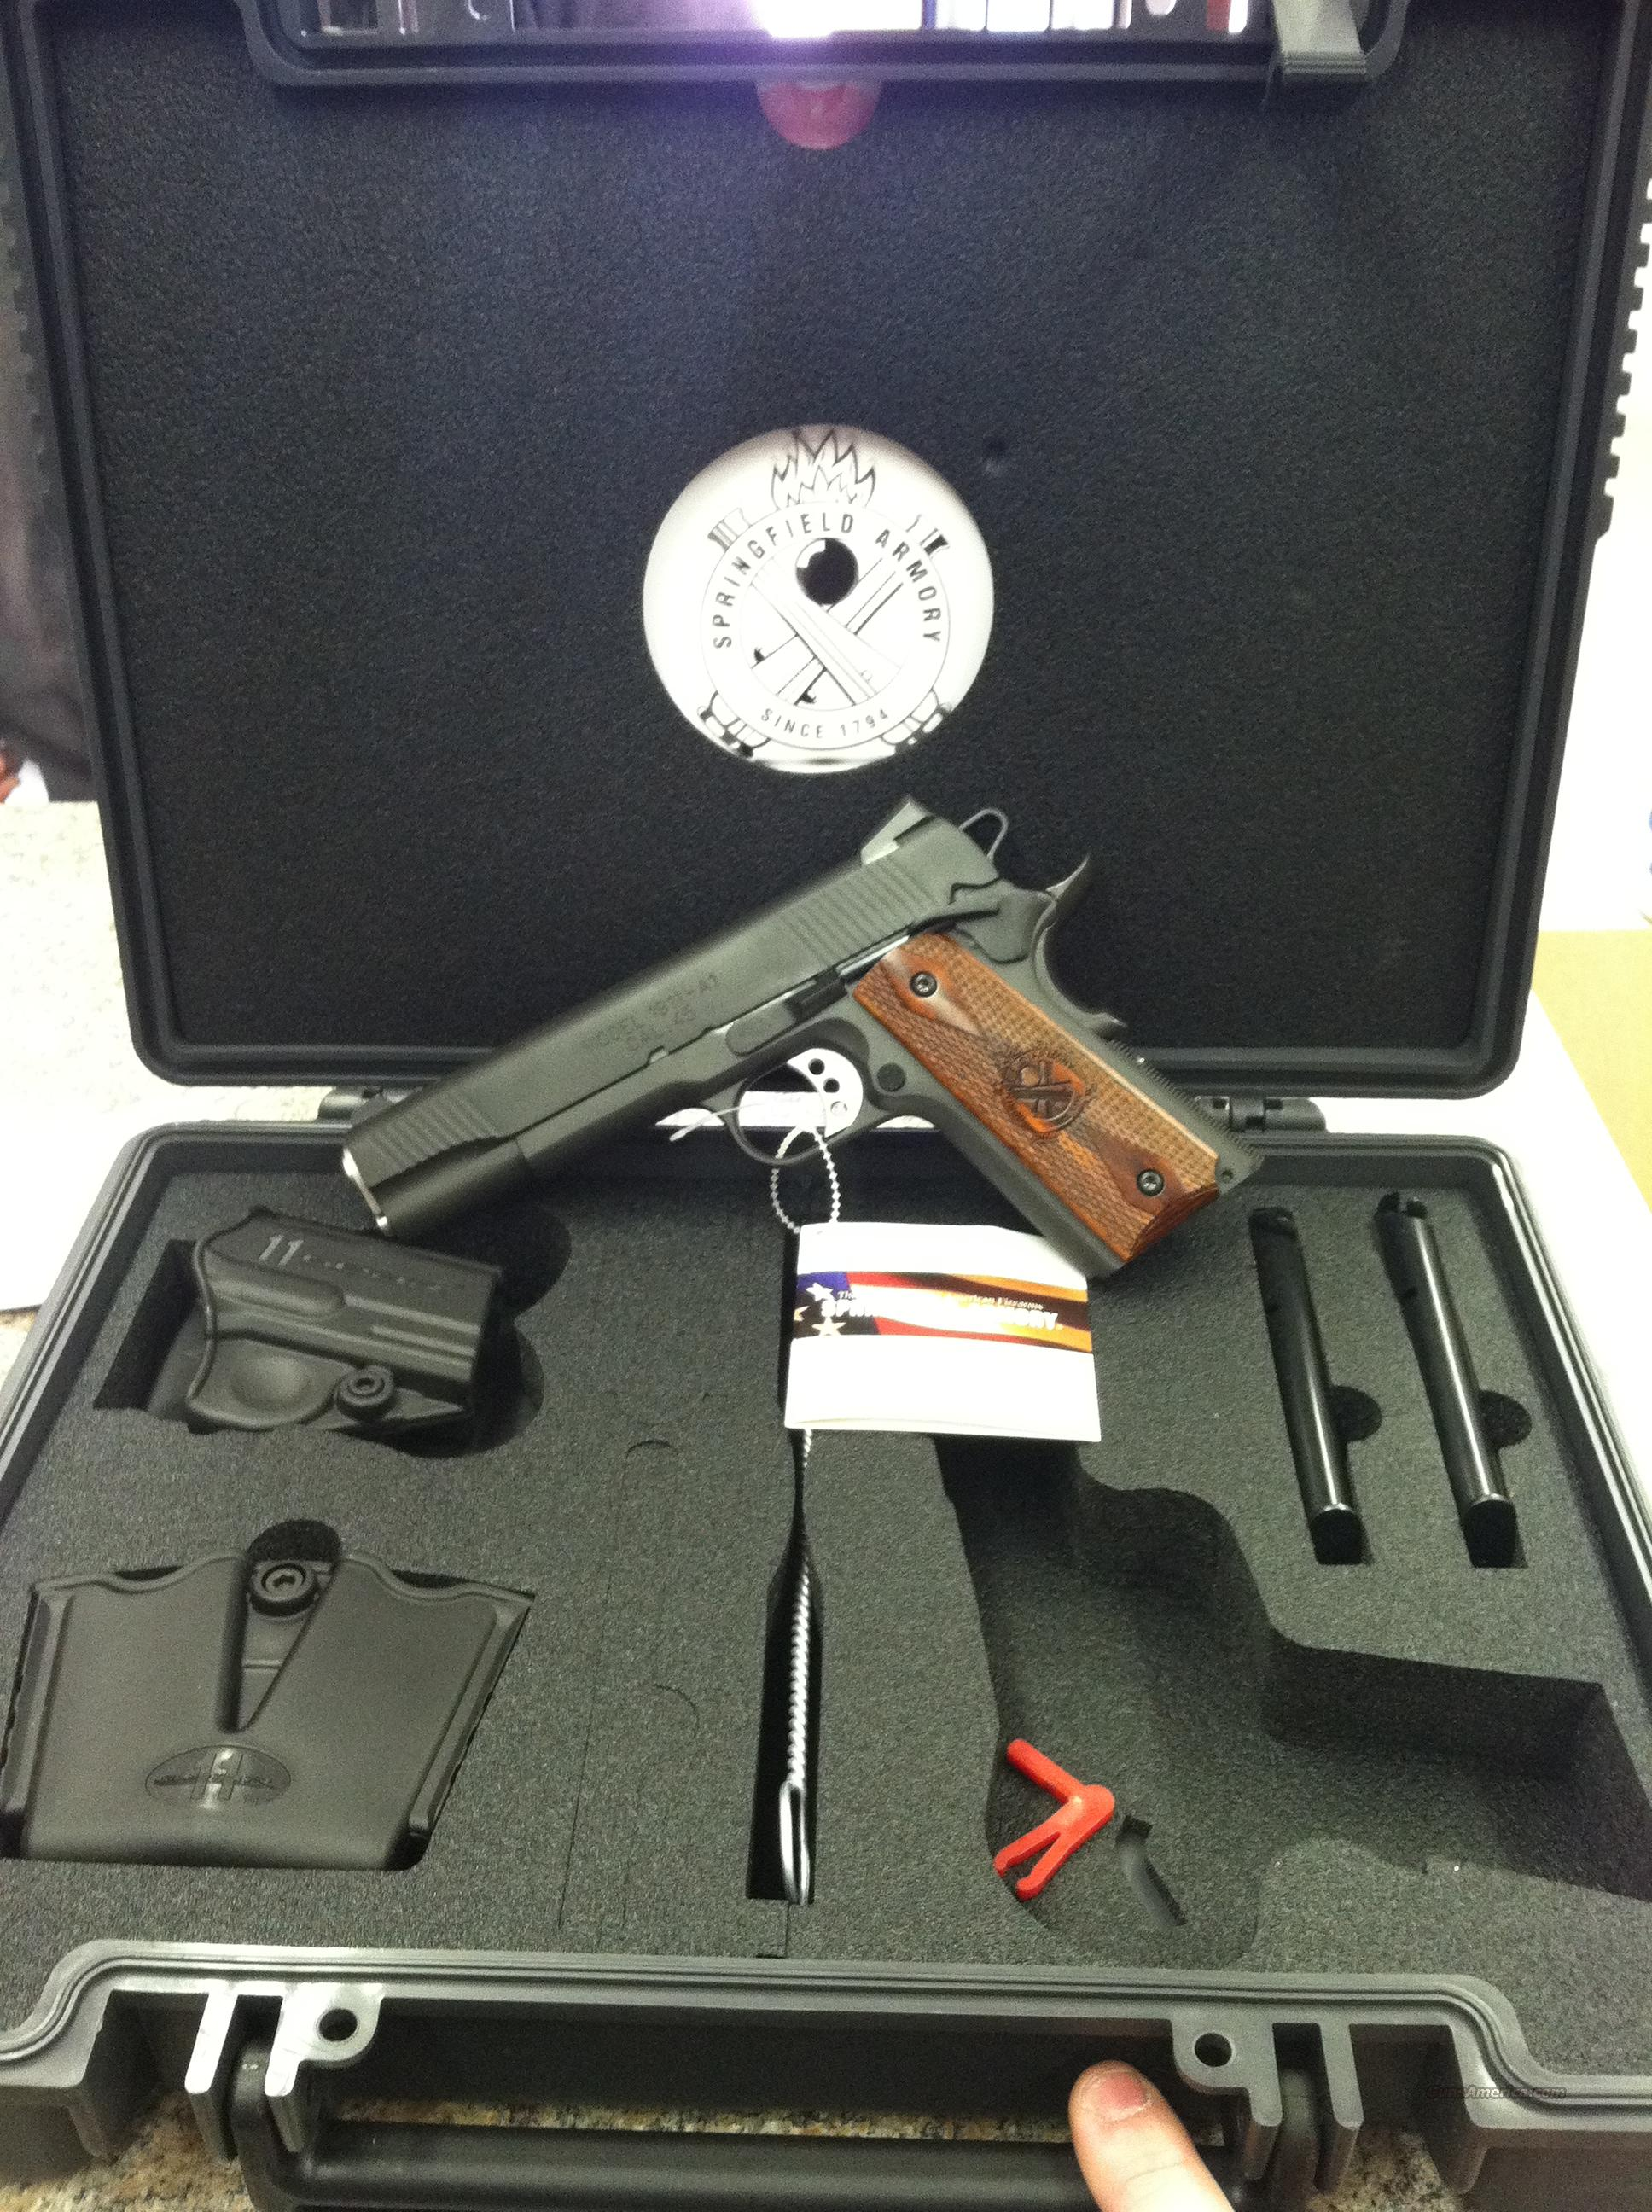 New Springfield 1911-45 Loaded Parkerized PX9109LP  With NS  Guns > Pistols > Springfield Armory Pistols > 1911 Type